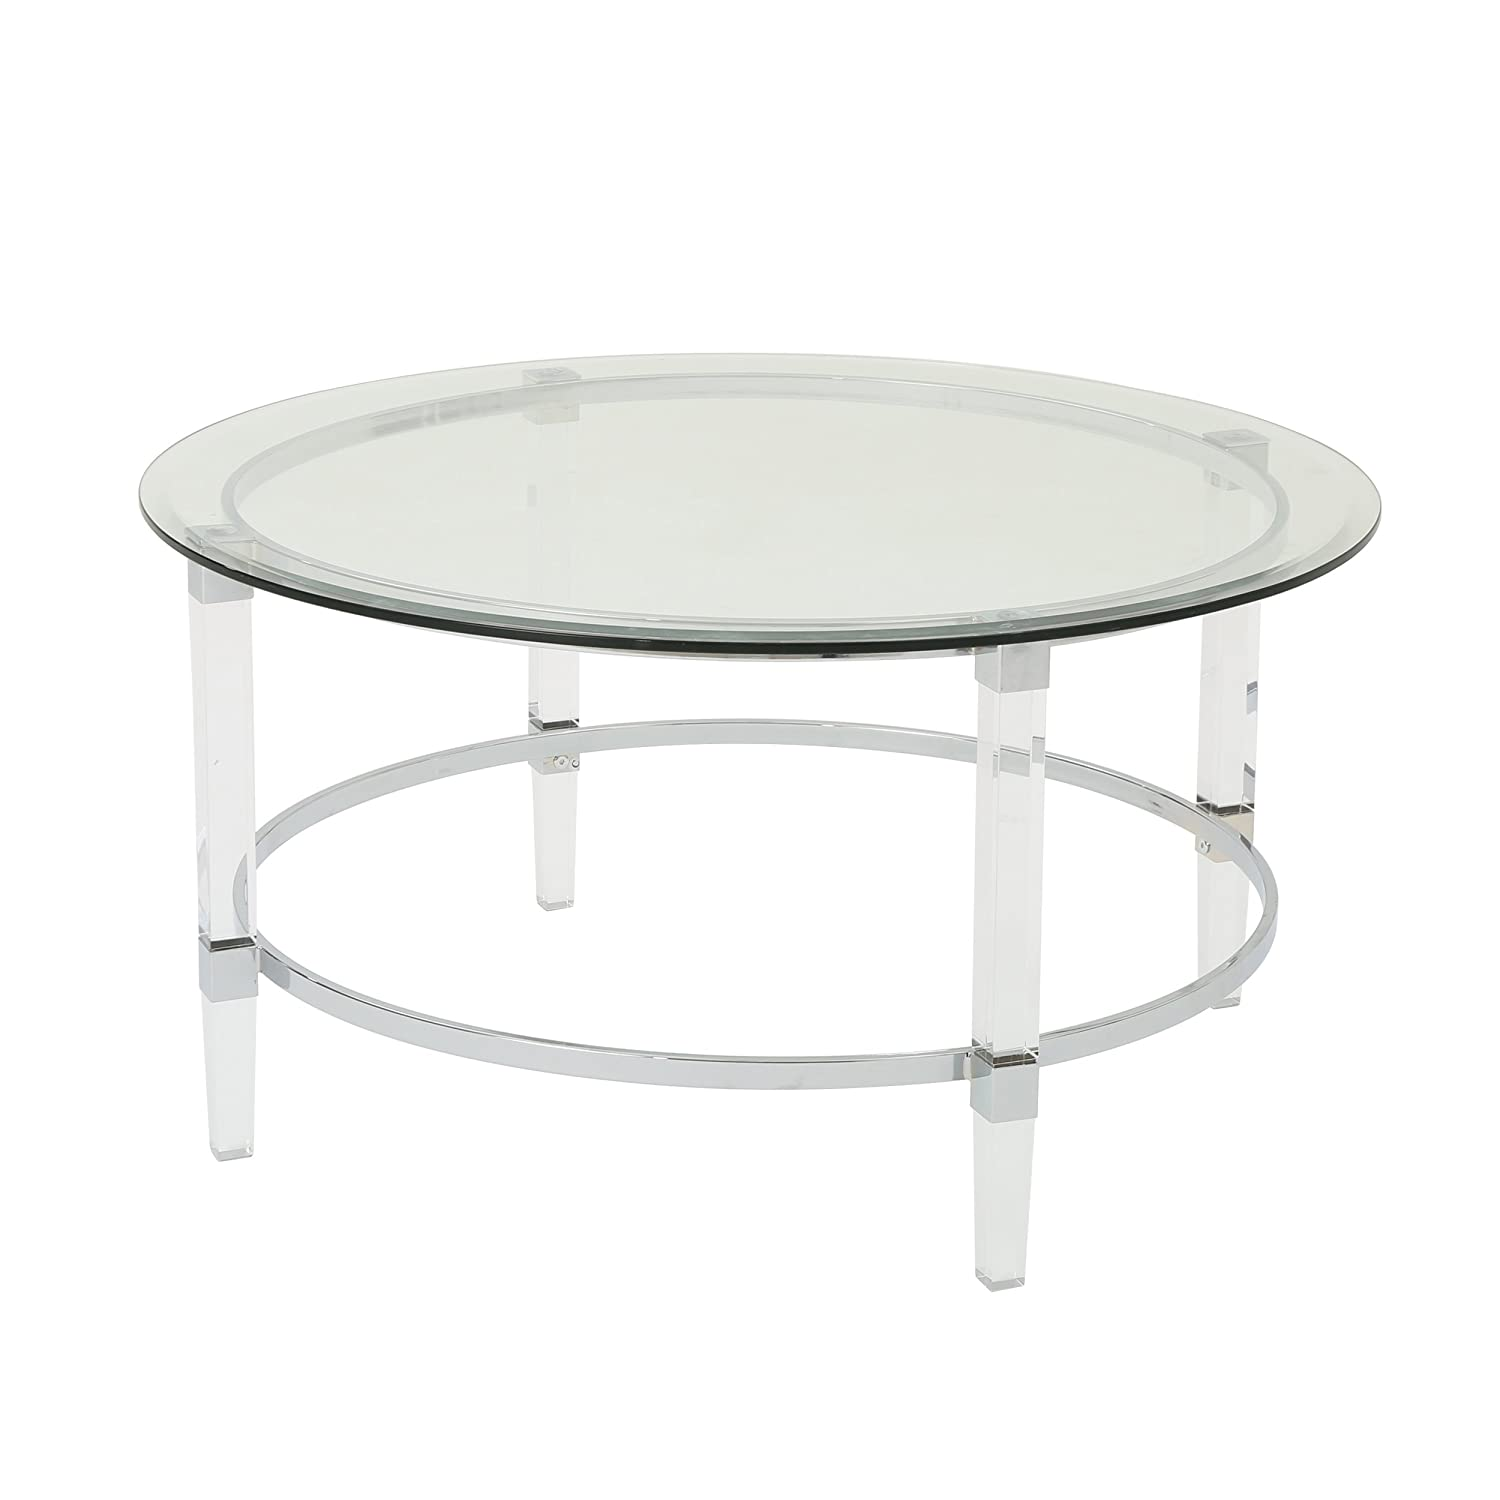 Christopher Knight Home 302313 Lynn Modern Round Tempered Glass Coffee Table with Acrylic and Iron Accents, Clear